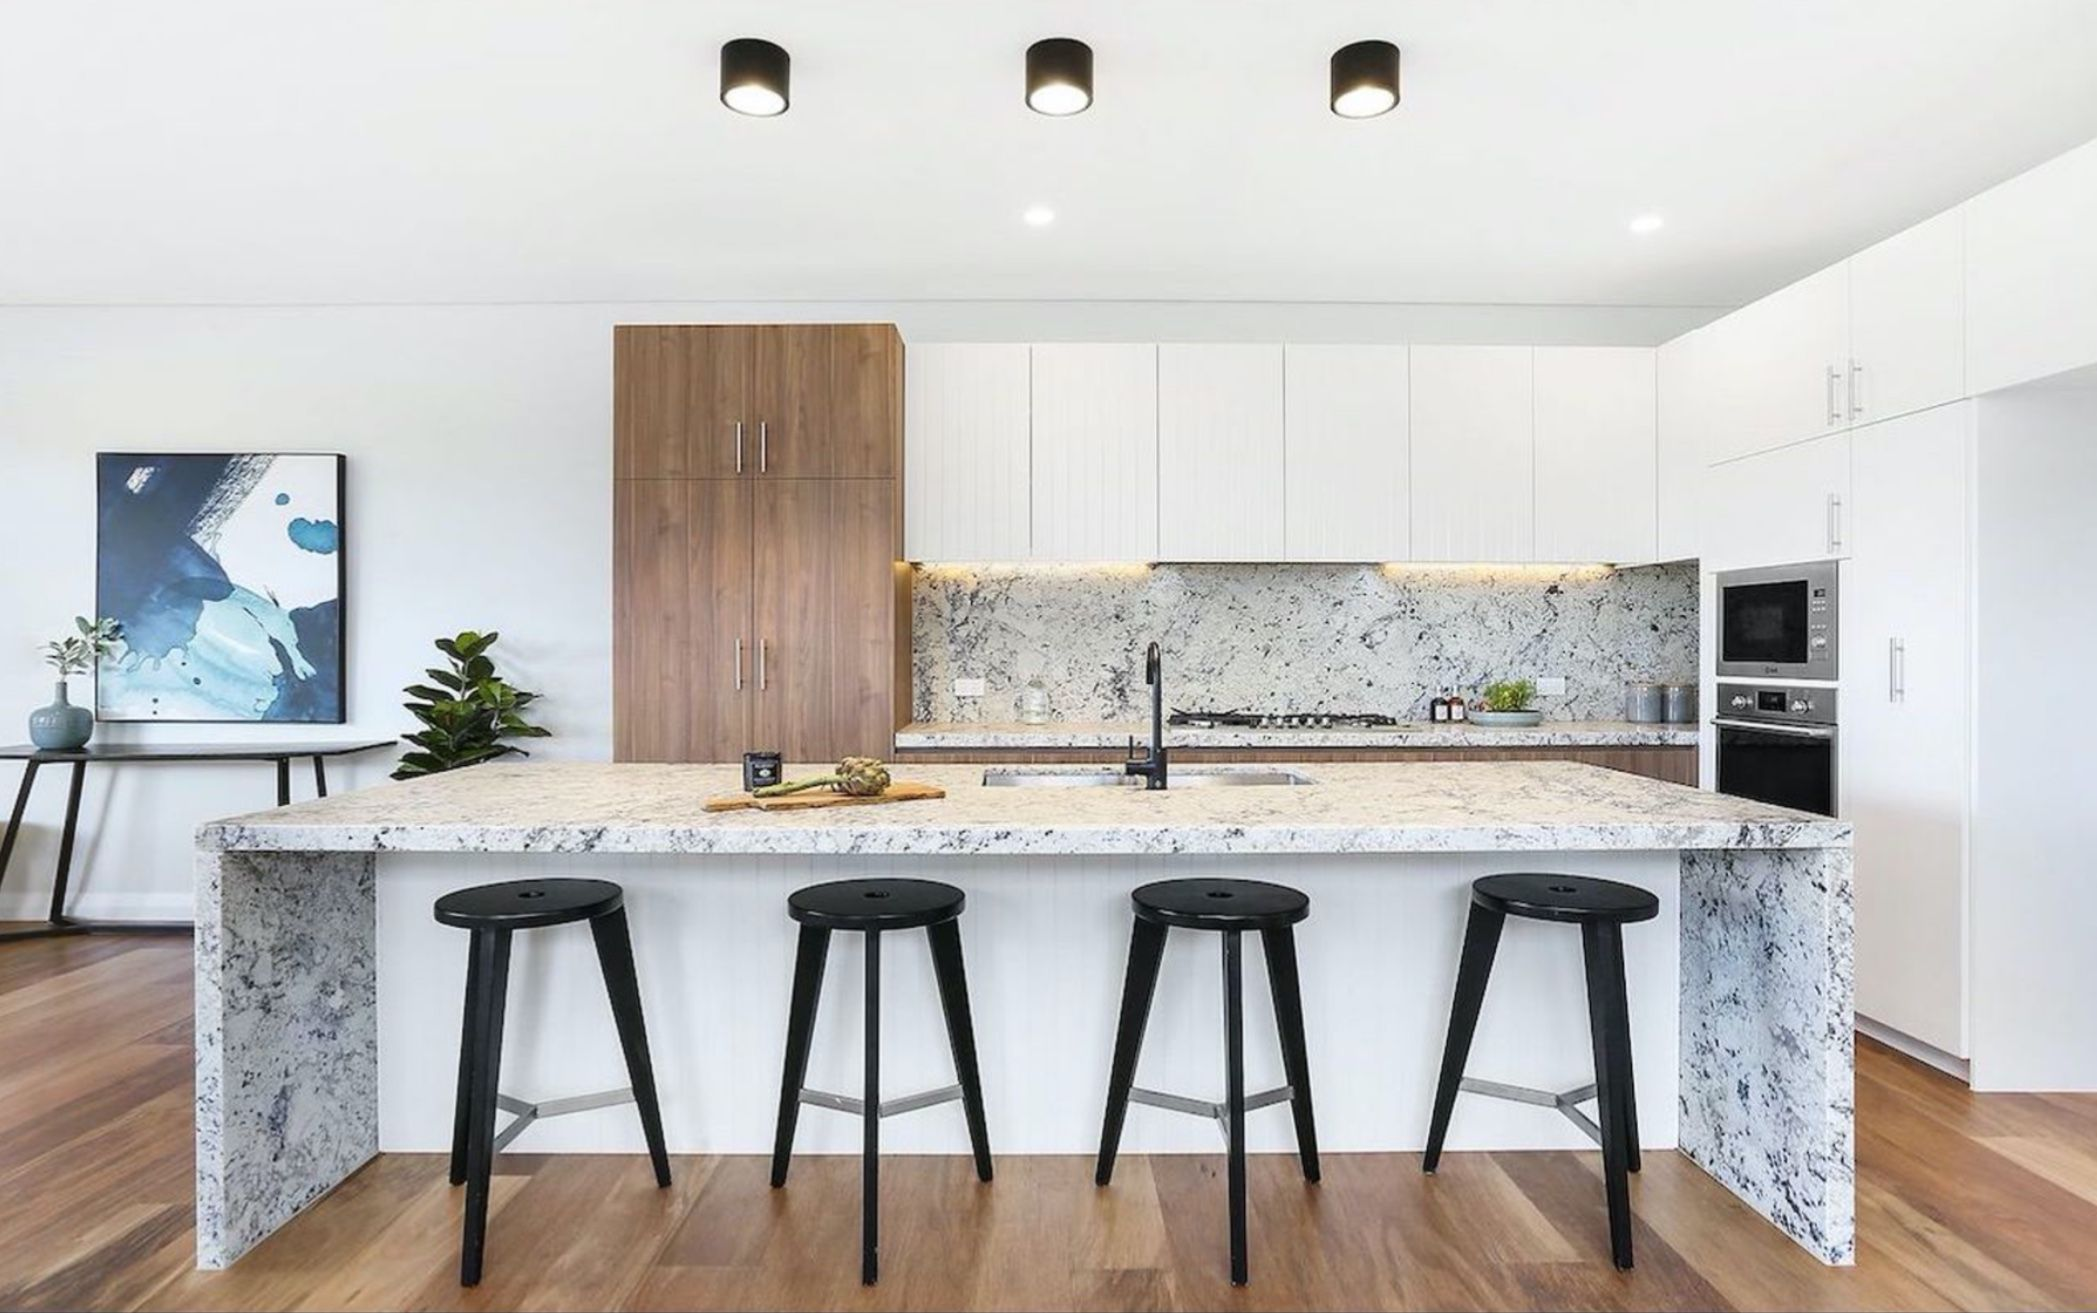 Contemporary Kitchen Is the Heart of this Home Ioanna